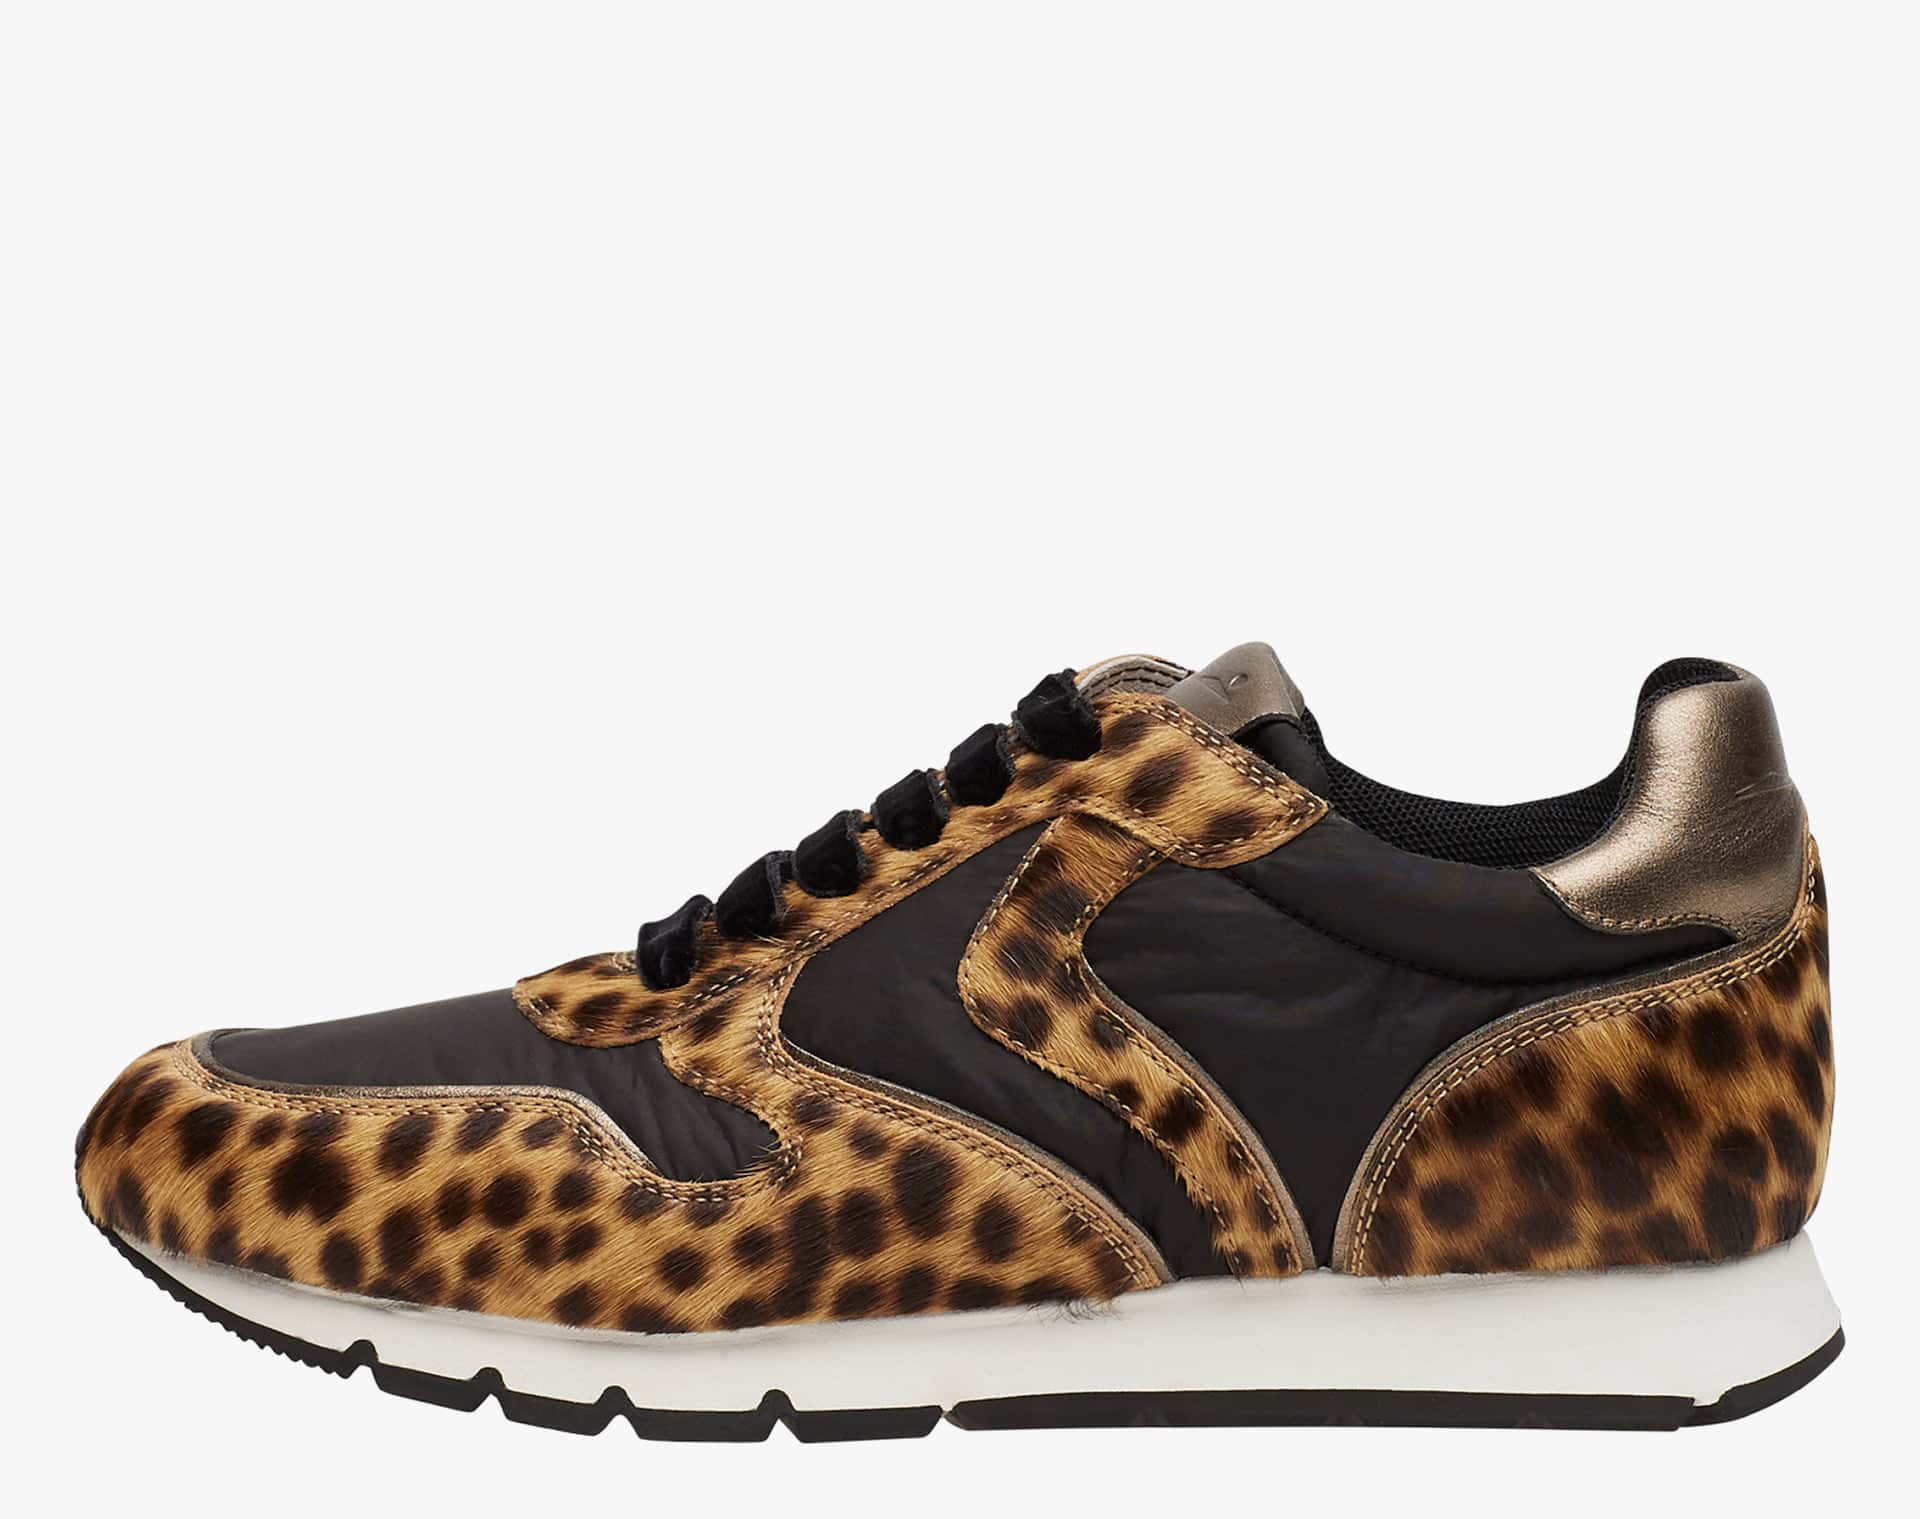 JULIA - Sneakers in pelle e nylon - Animalier